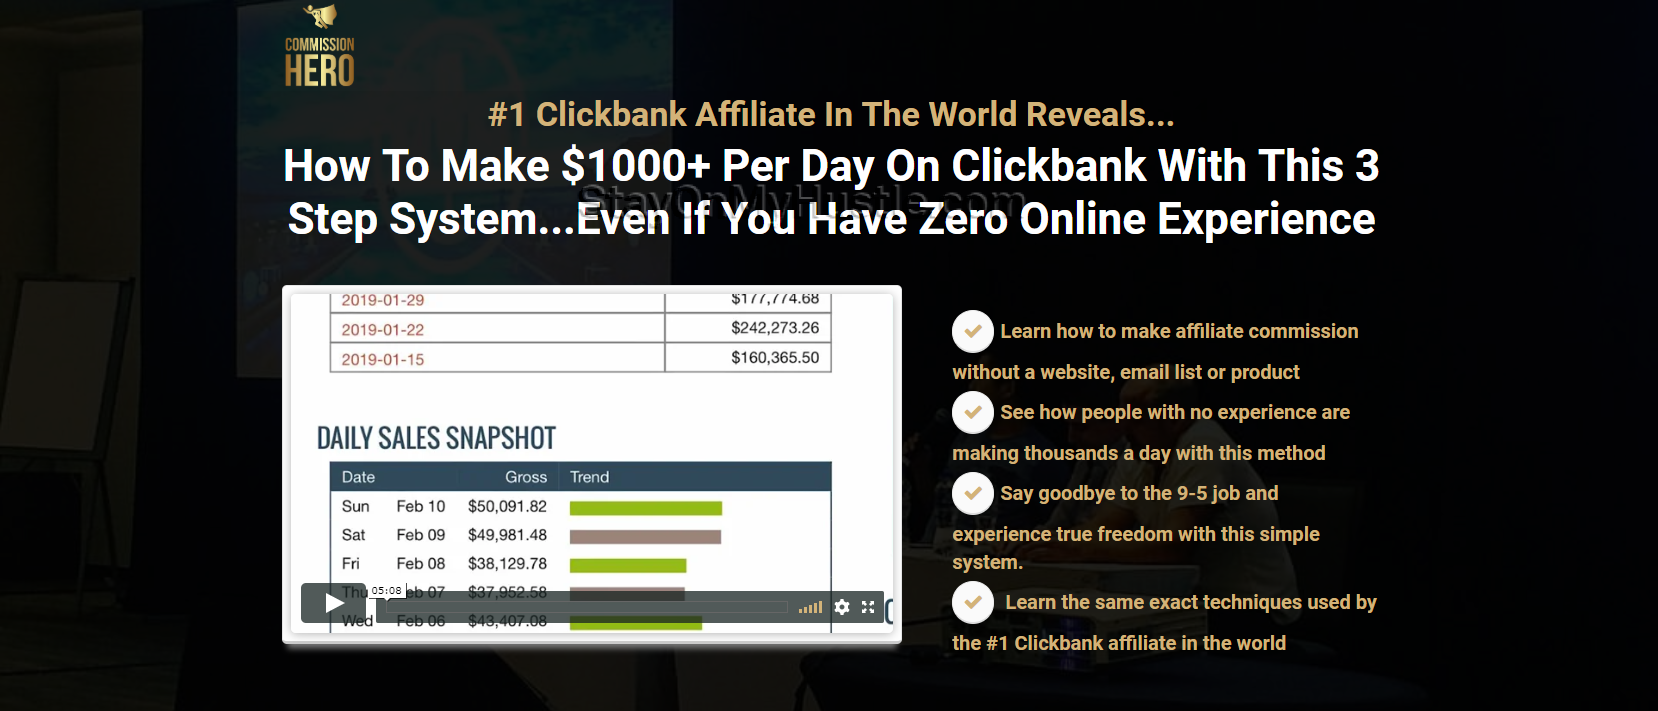 Buy Commission Hero Affiliate Marketing Deals Today